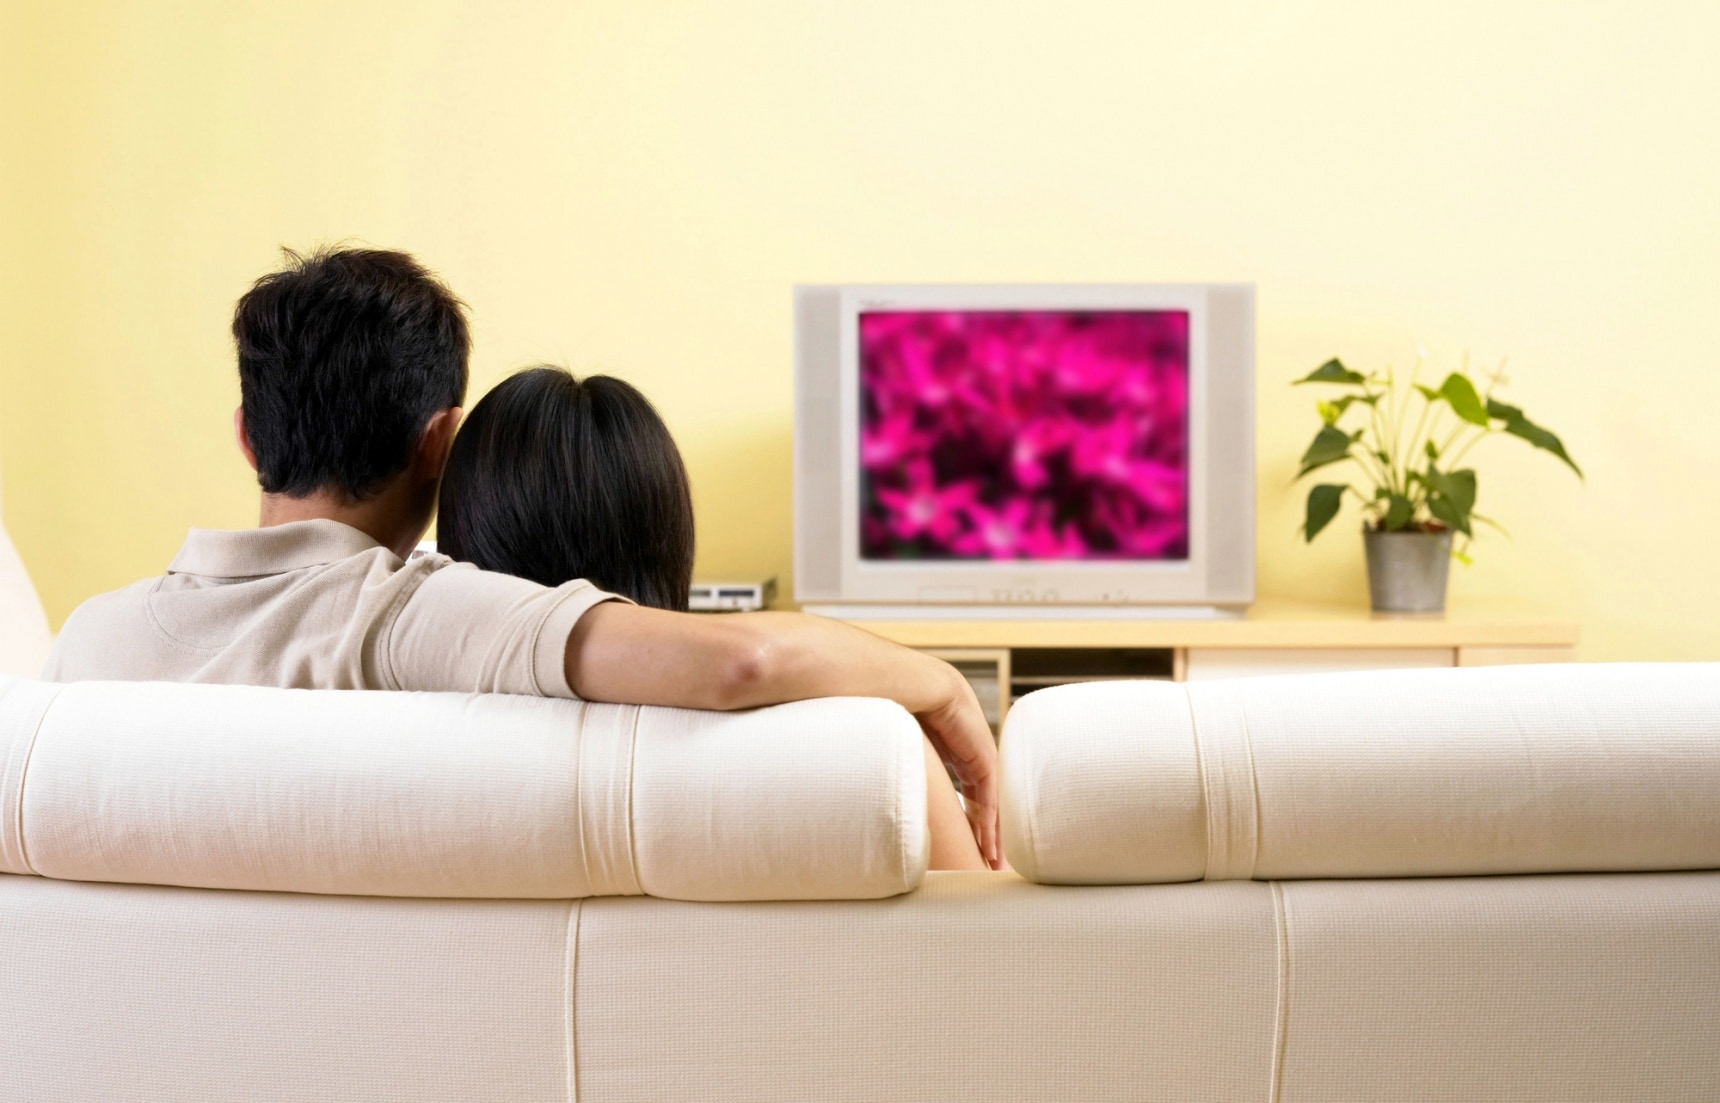 Love Songs from Japanese TV Shows & Movies